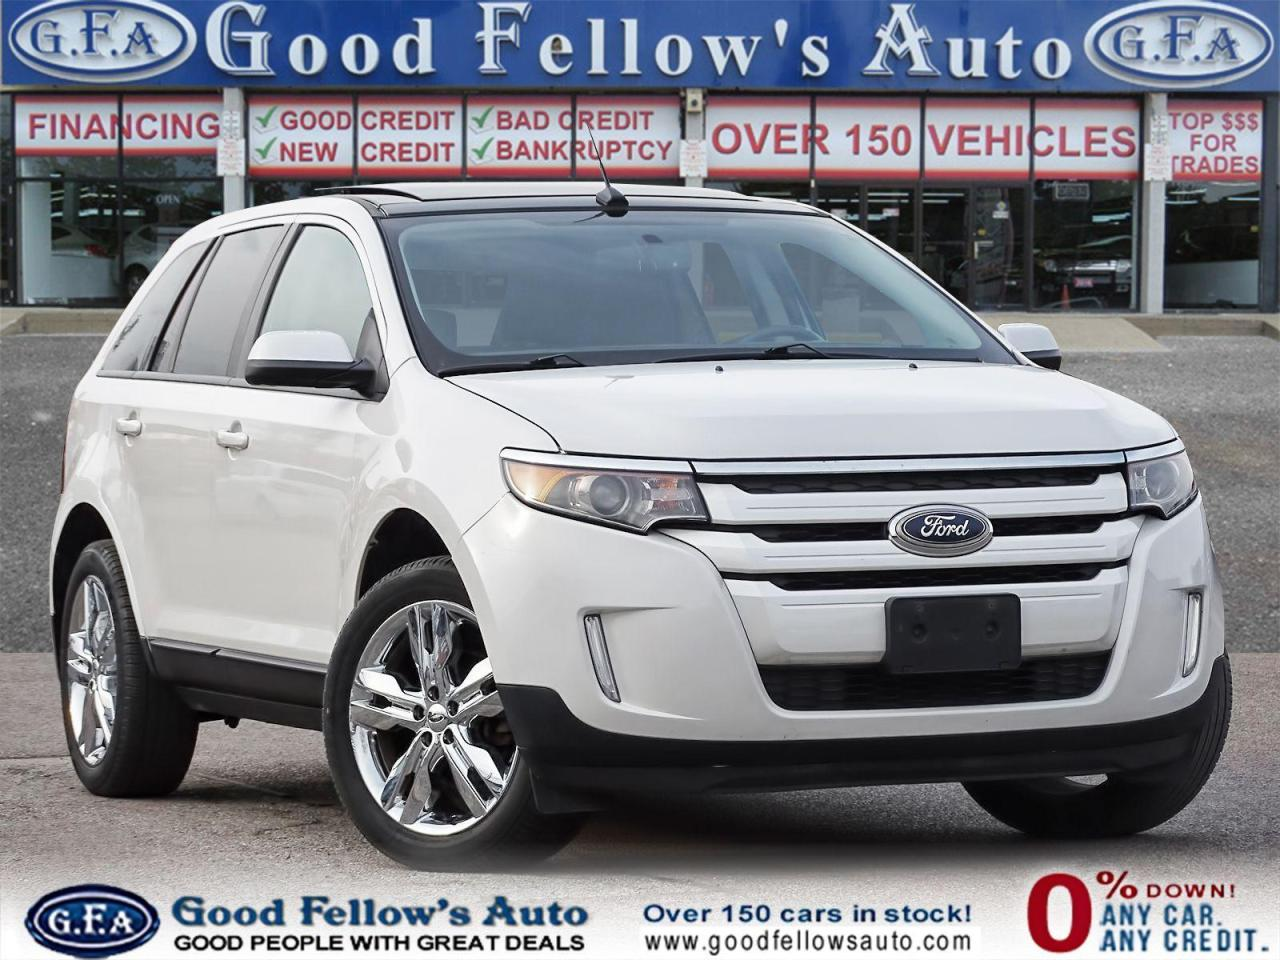 used 2013 Ford Edge car, priced at $12,400